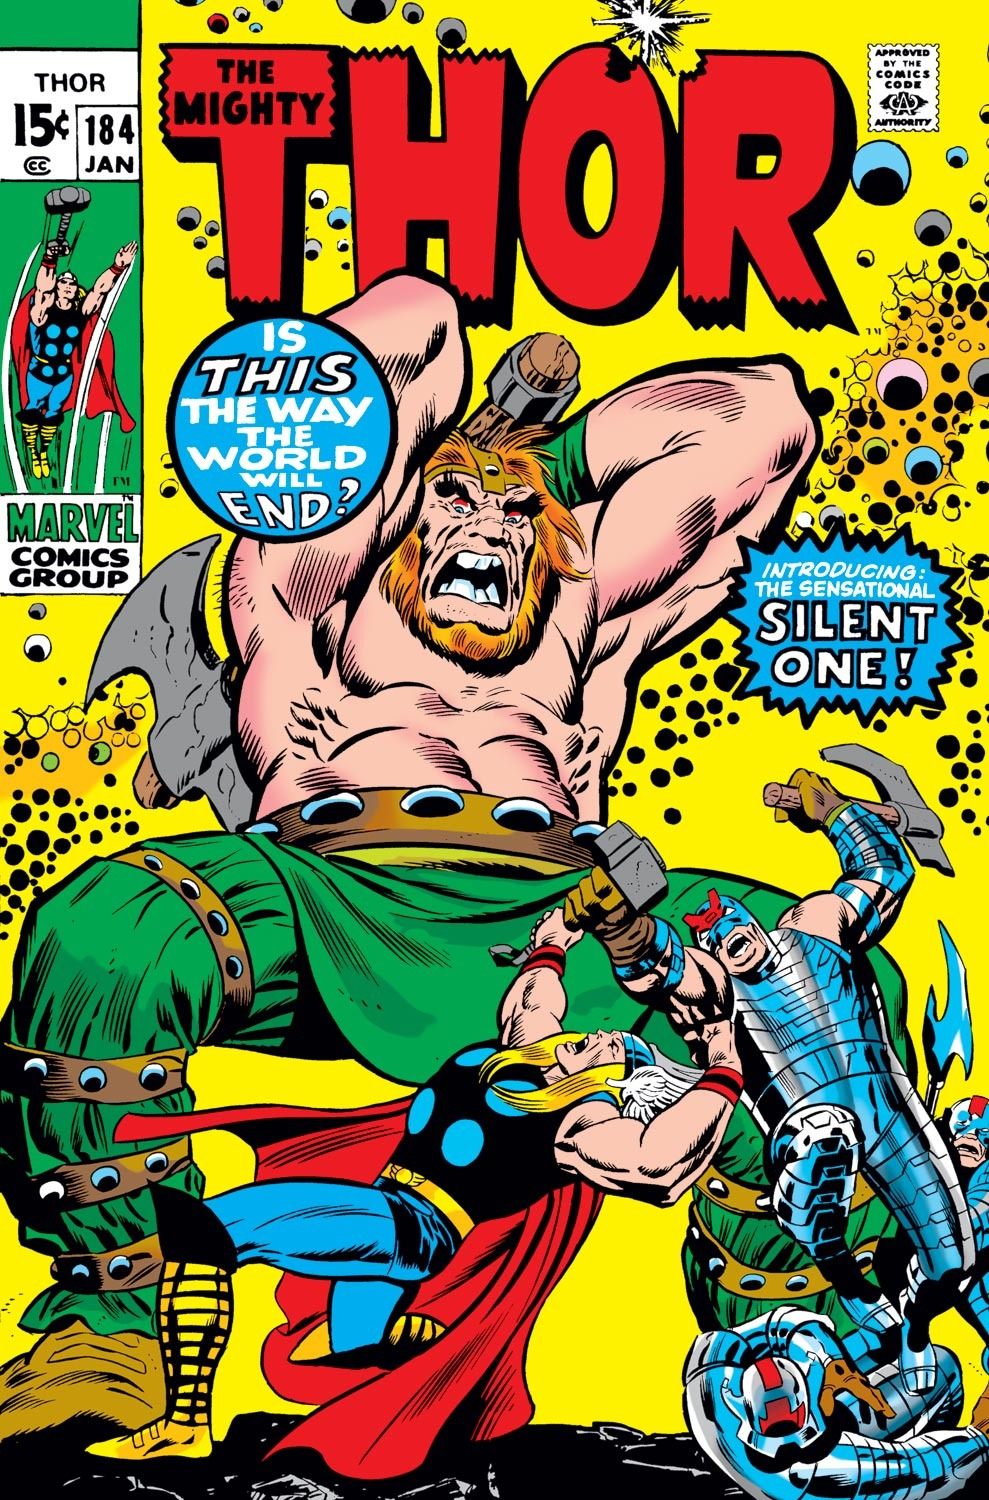 Thor (1966) 184 Page 1